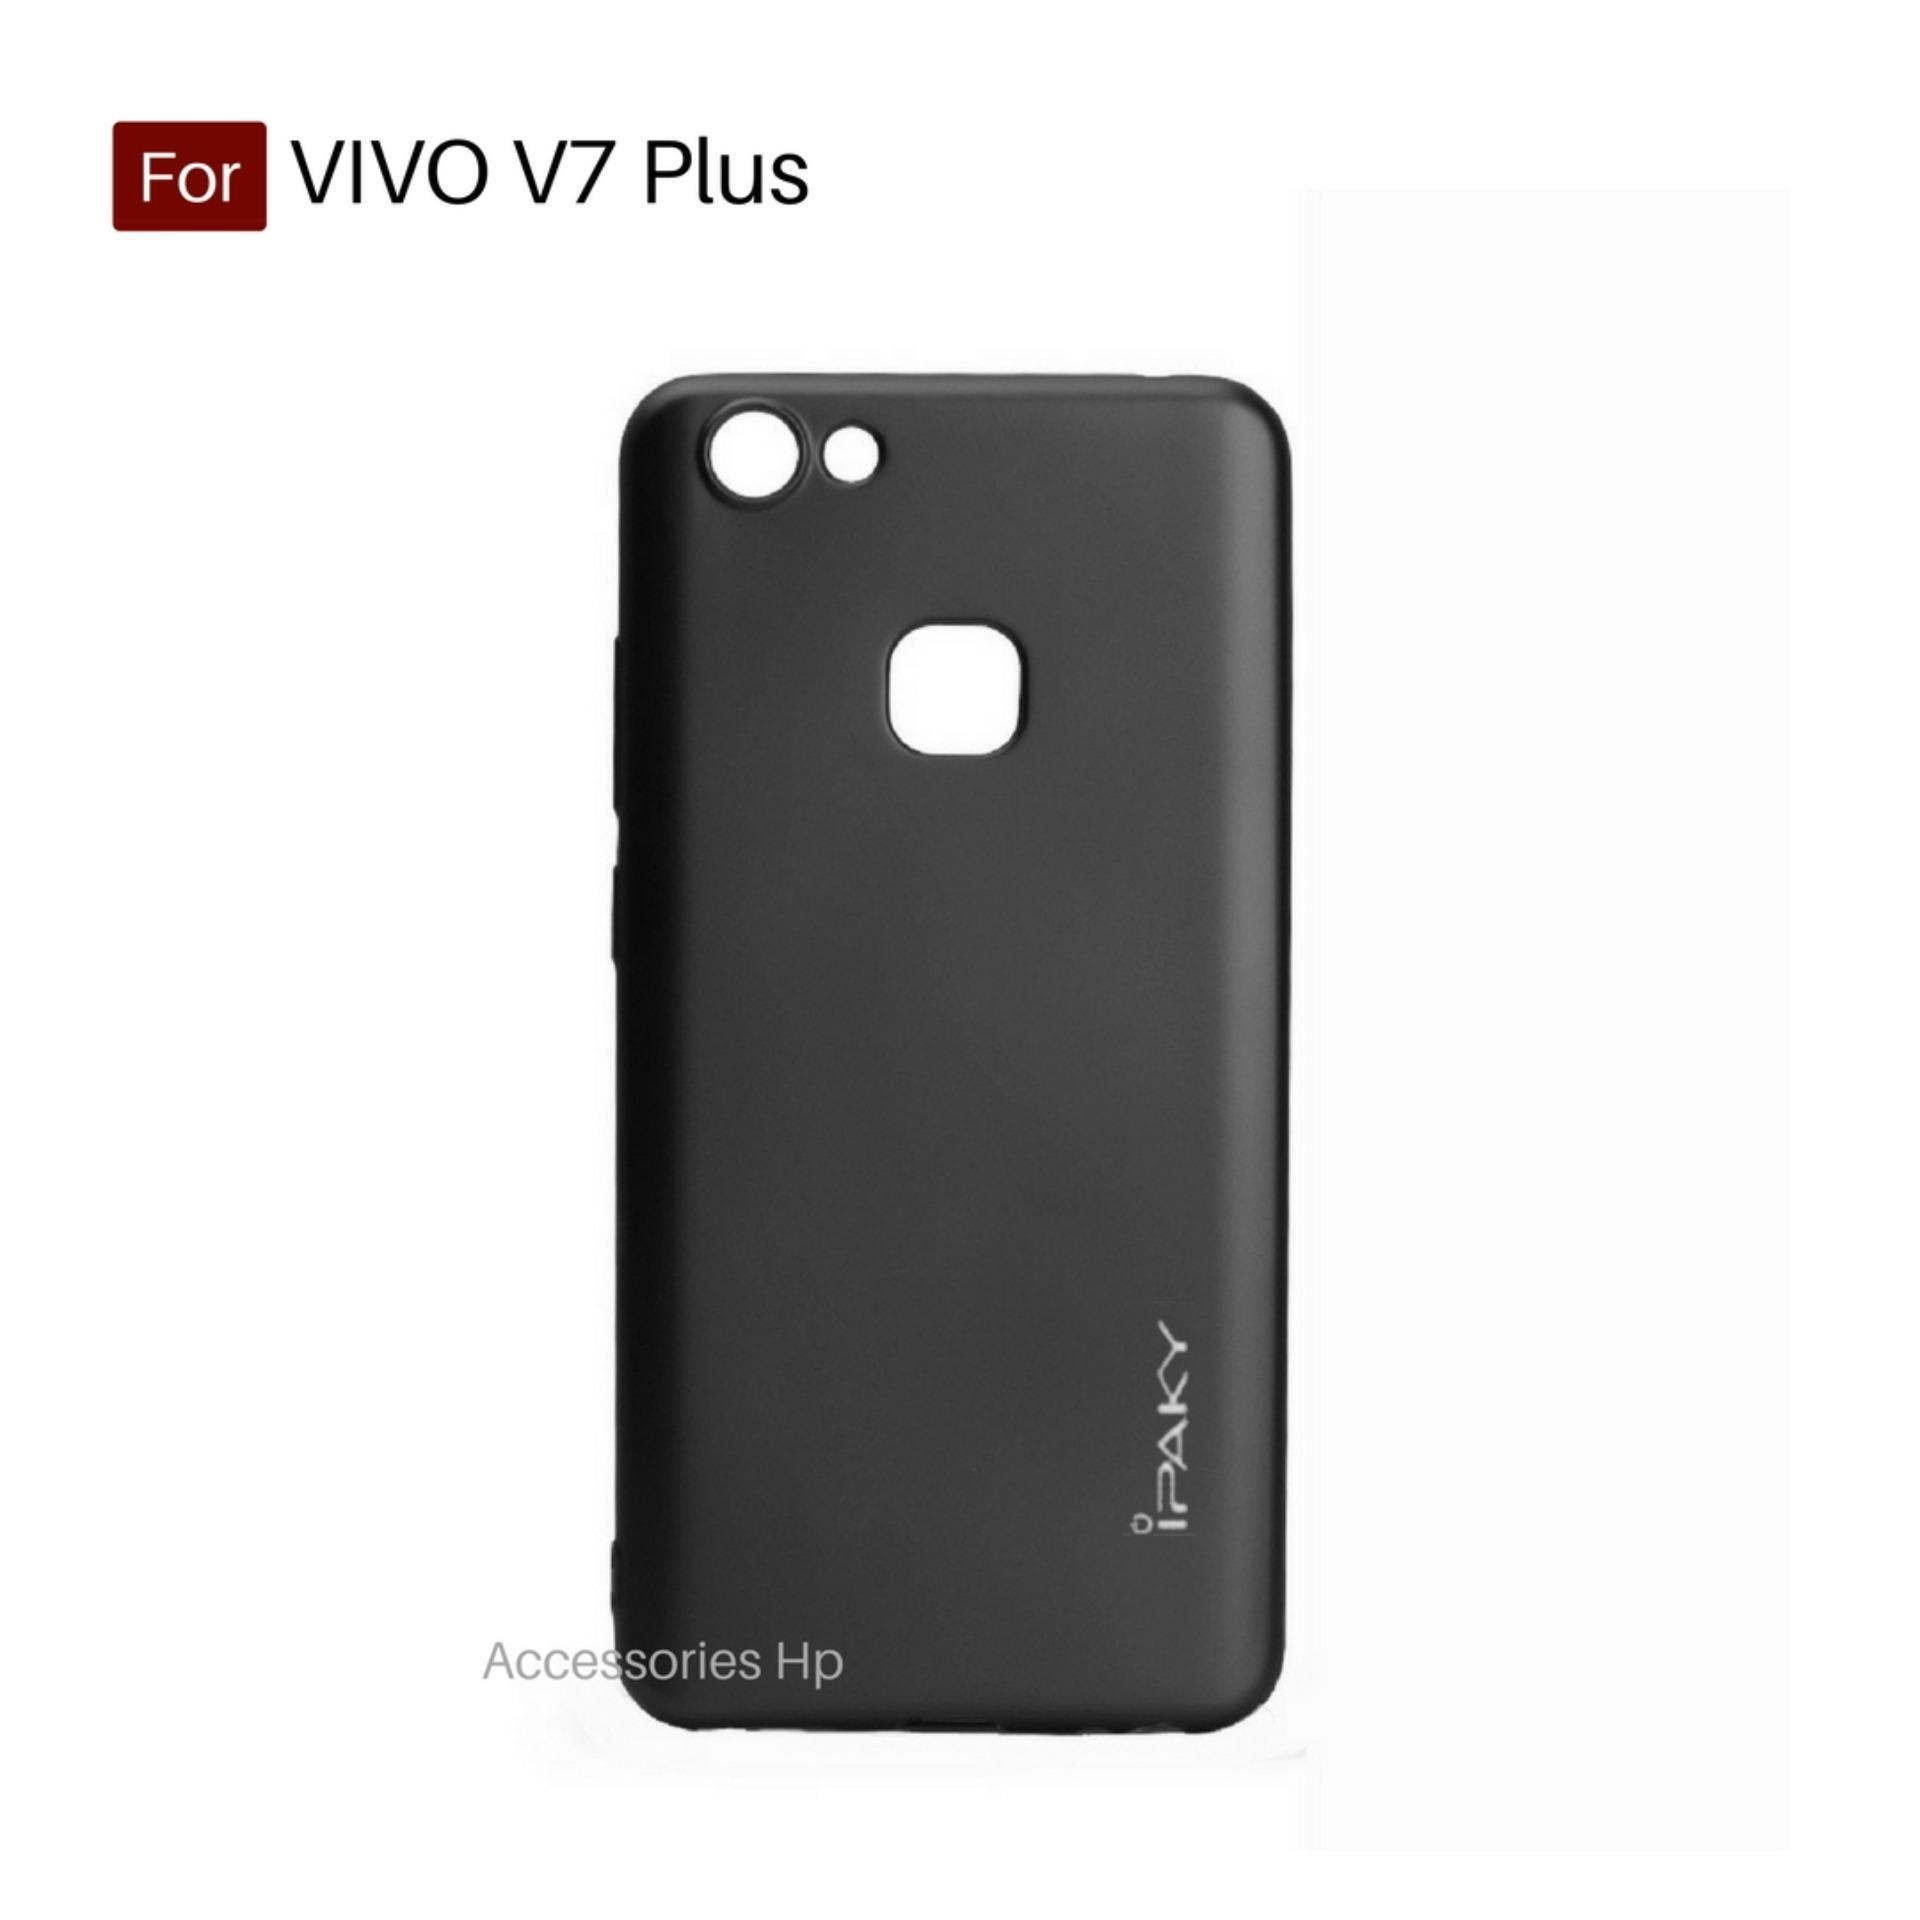 Accessories Hp iPaky Super Slim Matte Anti Fingerprint Hybrid Case For Vivo V7 Plus Black